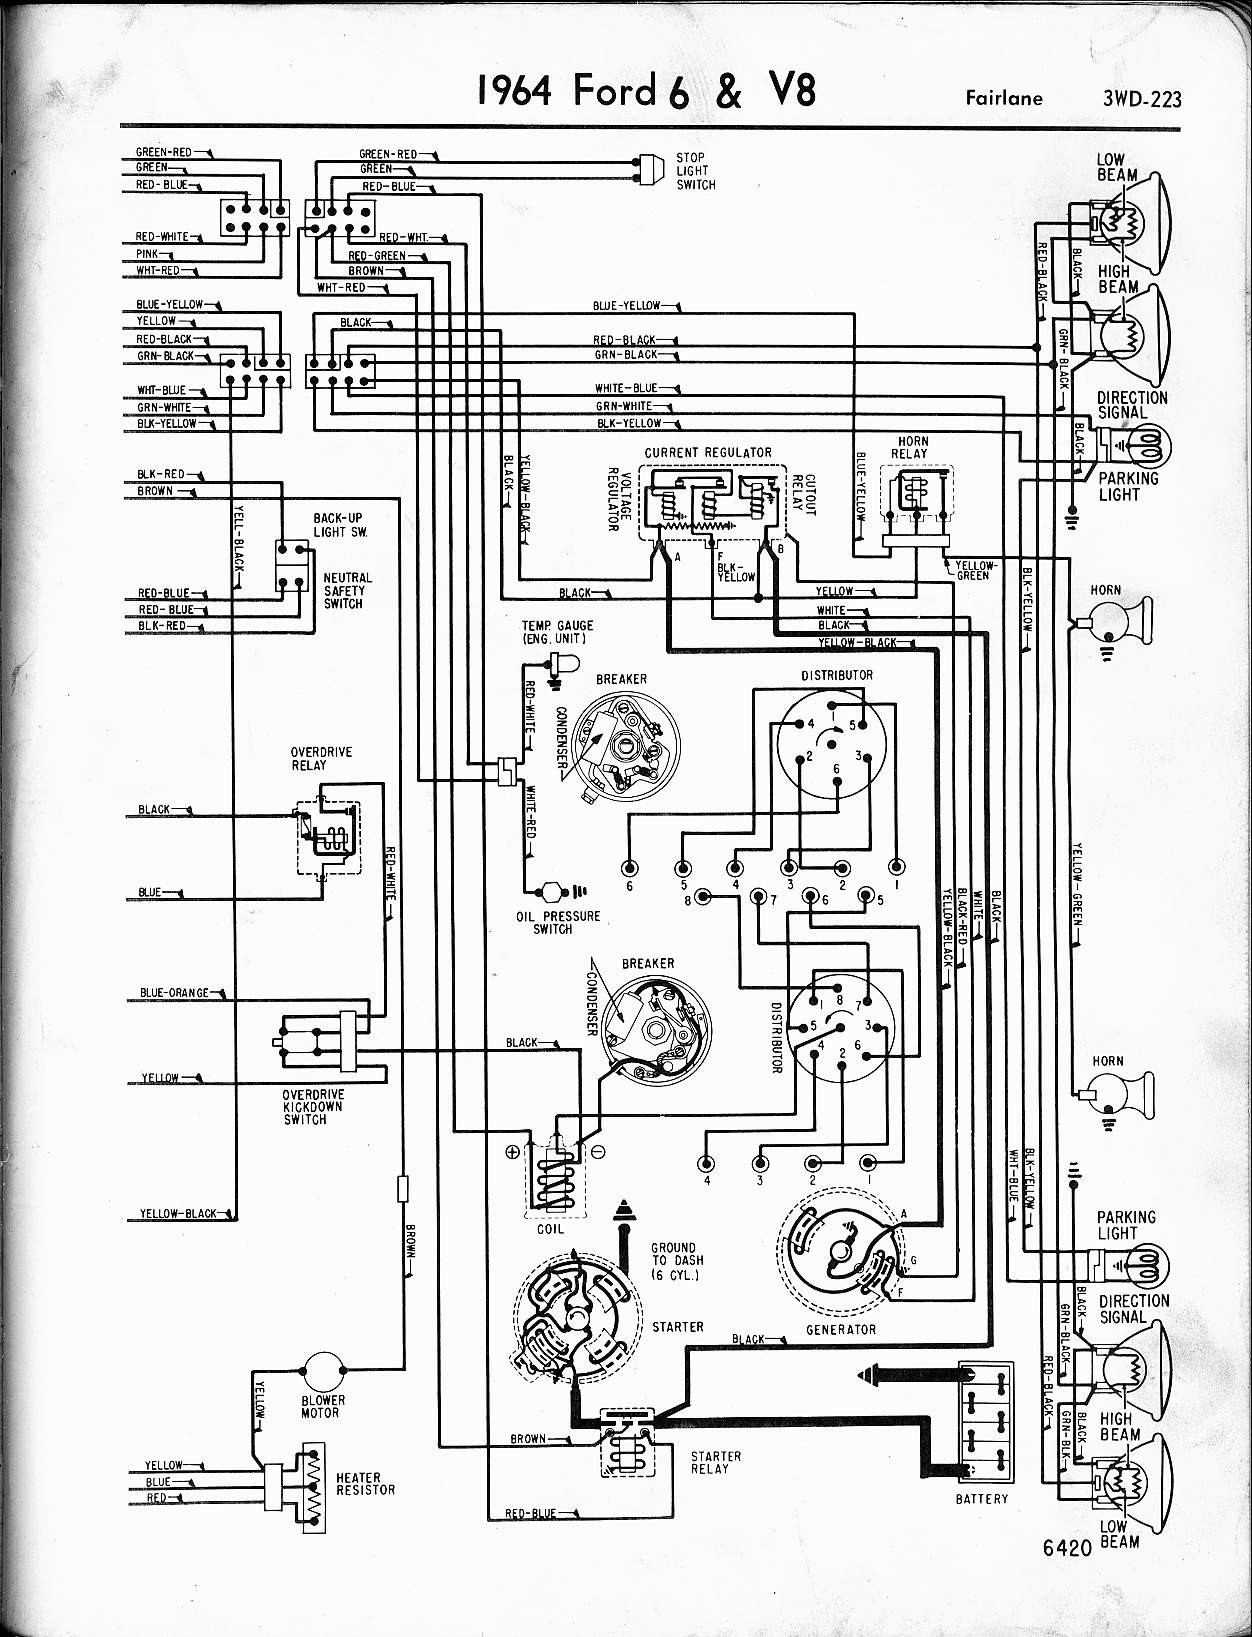 Ford 4 6 V8 Engine Diagram 57 65 ford Wiring Diagrams Of Ford 4 6 V8